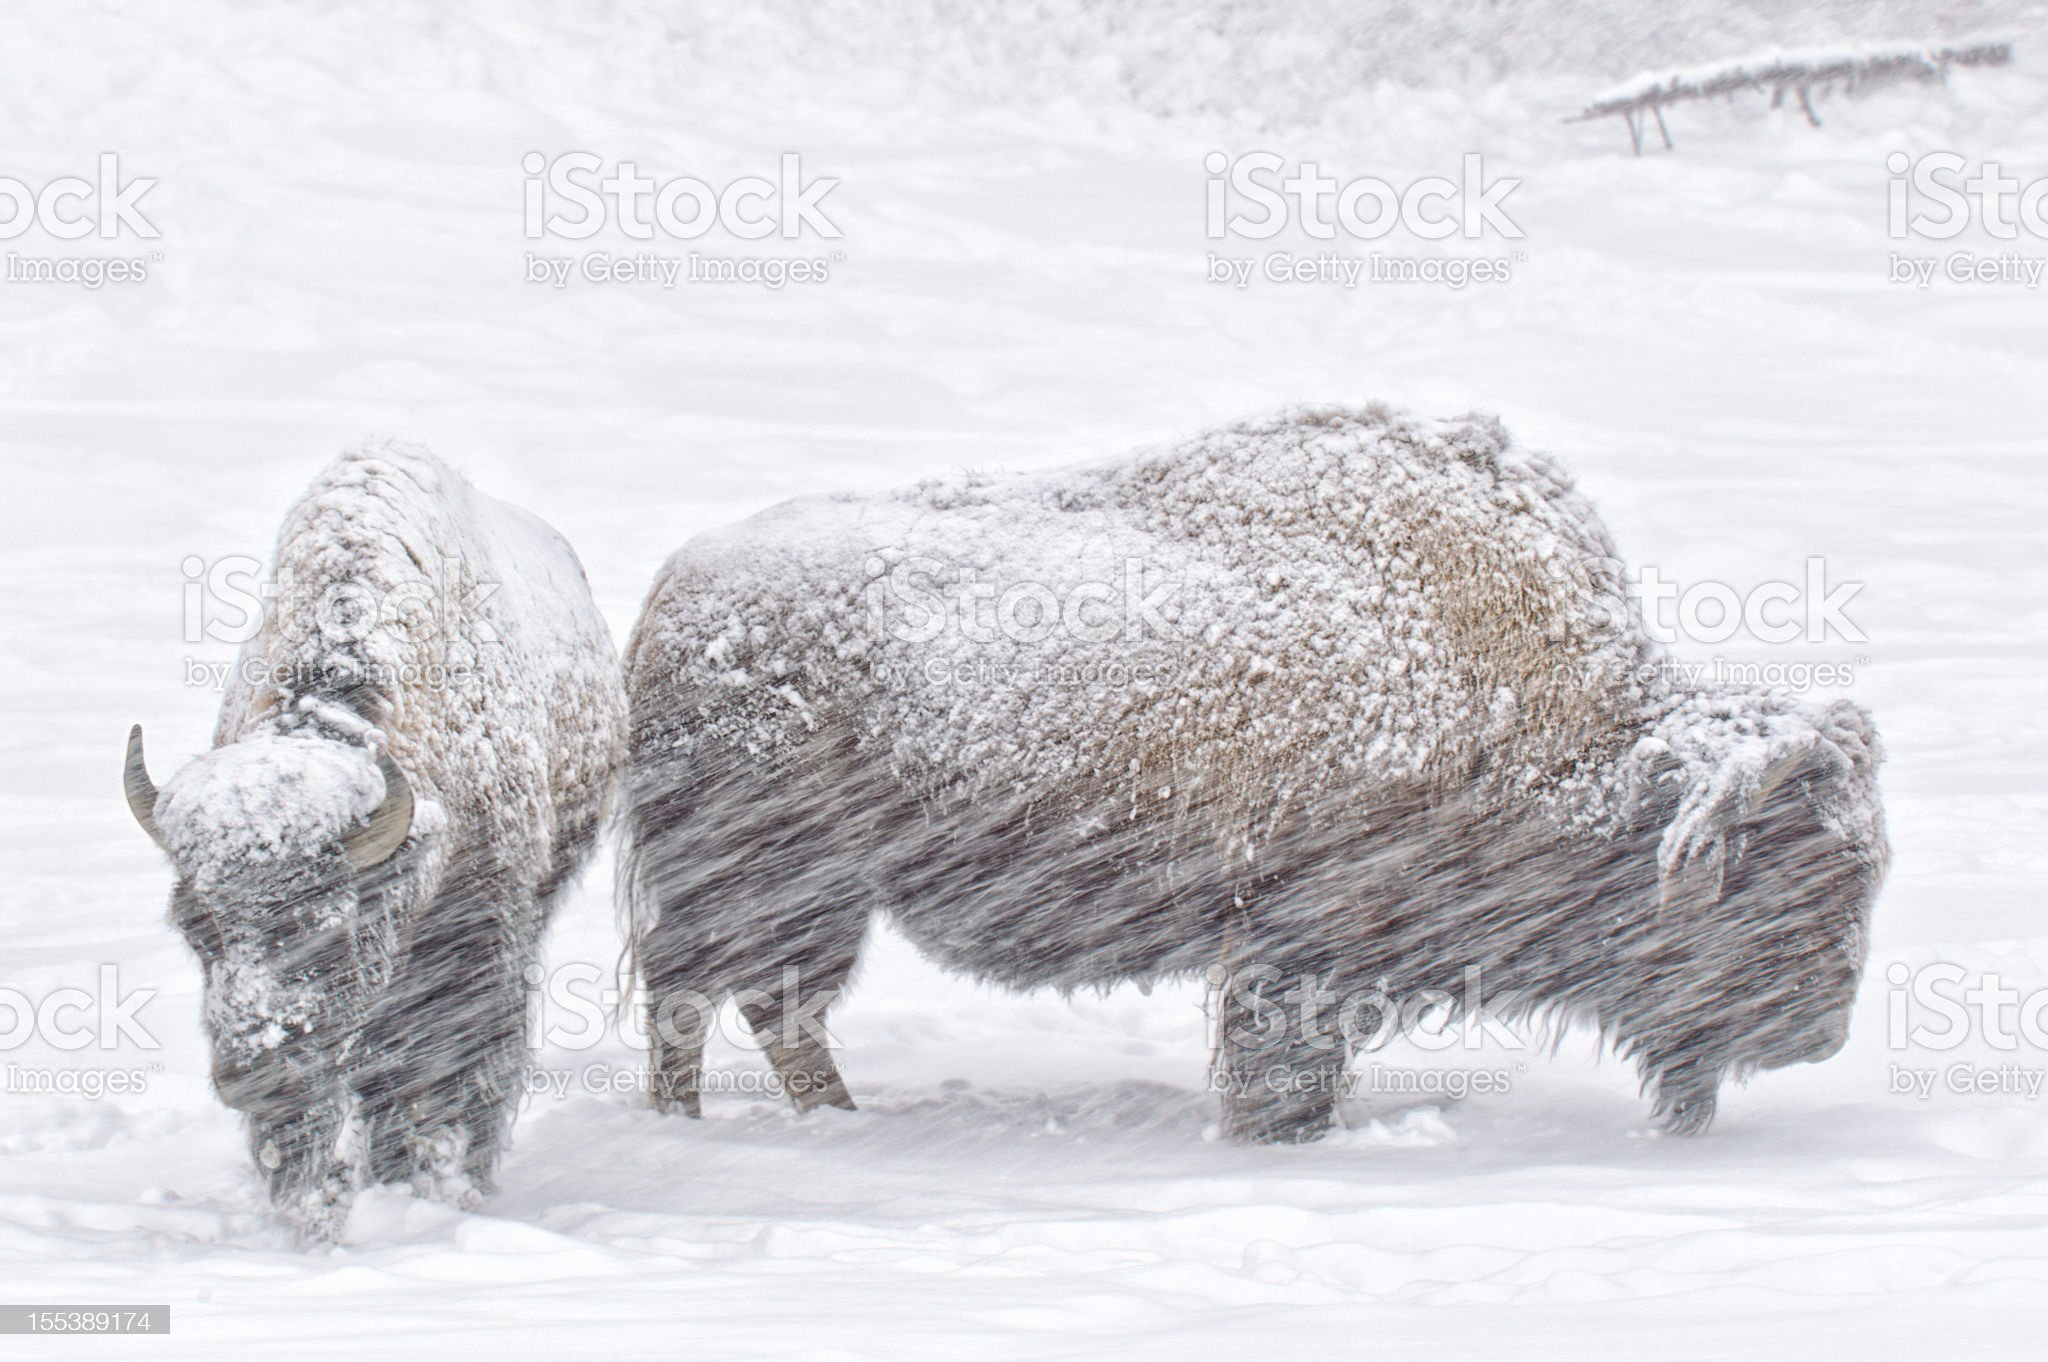 Bison in Winter Snow royalty-free stock photo